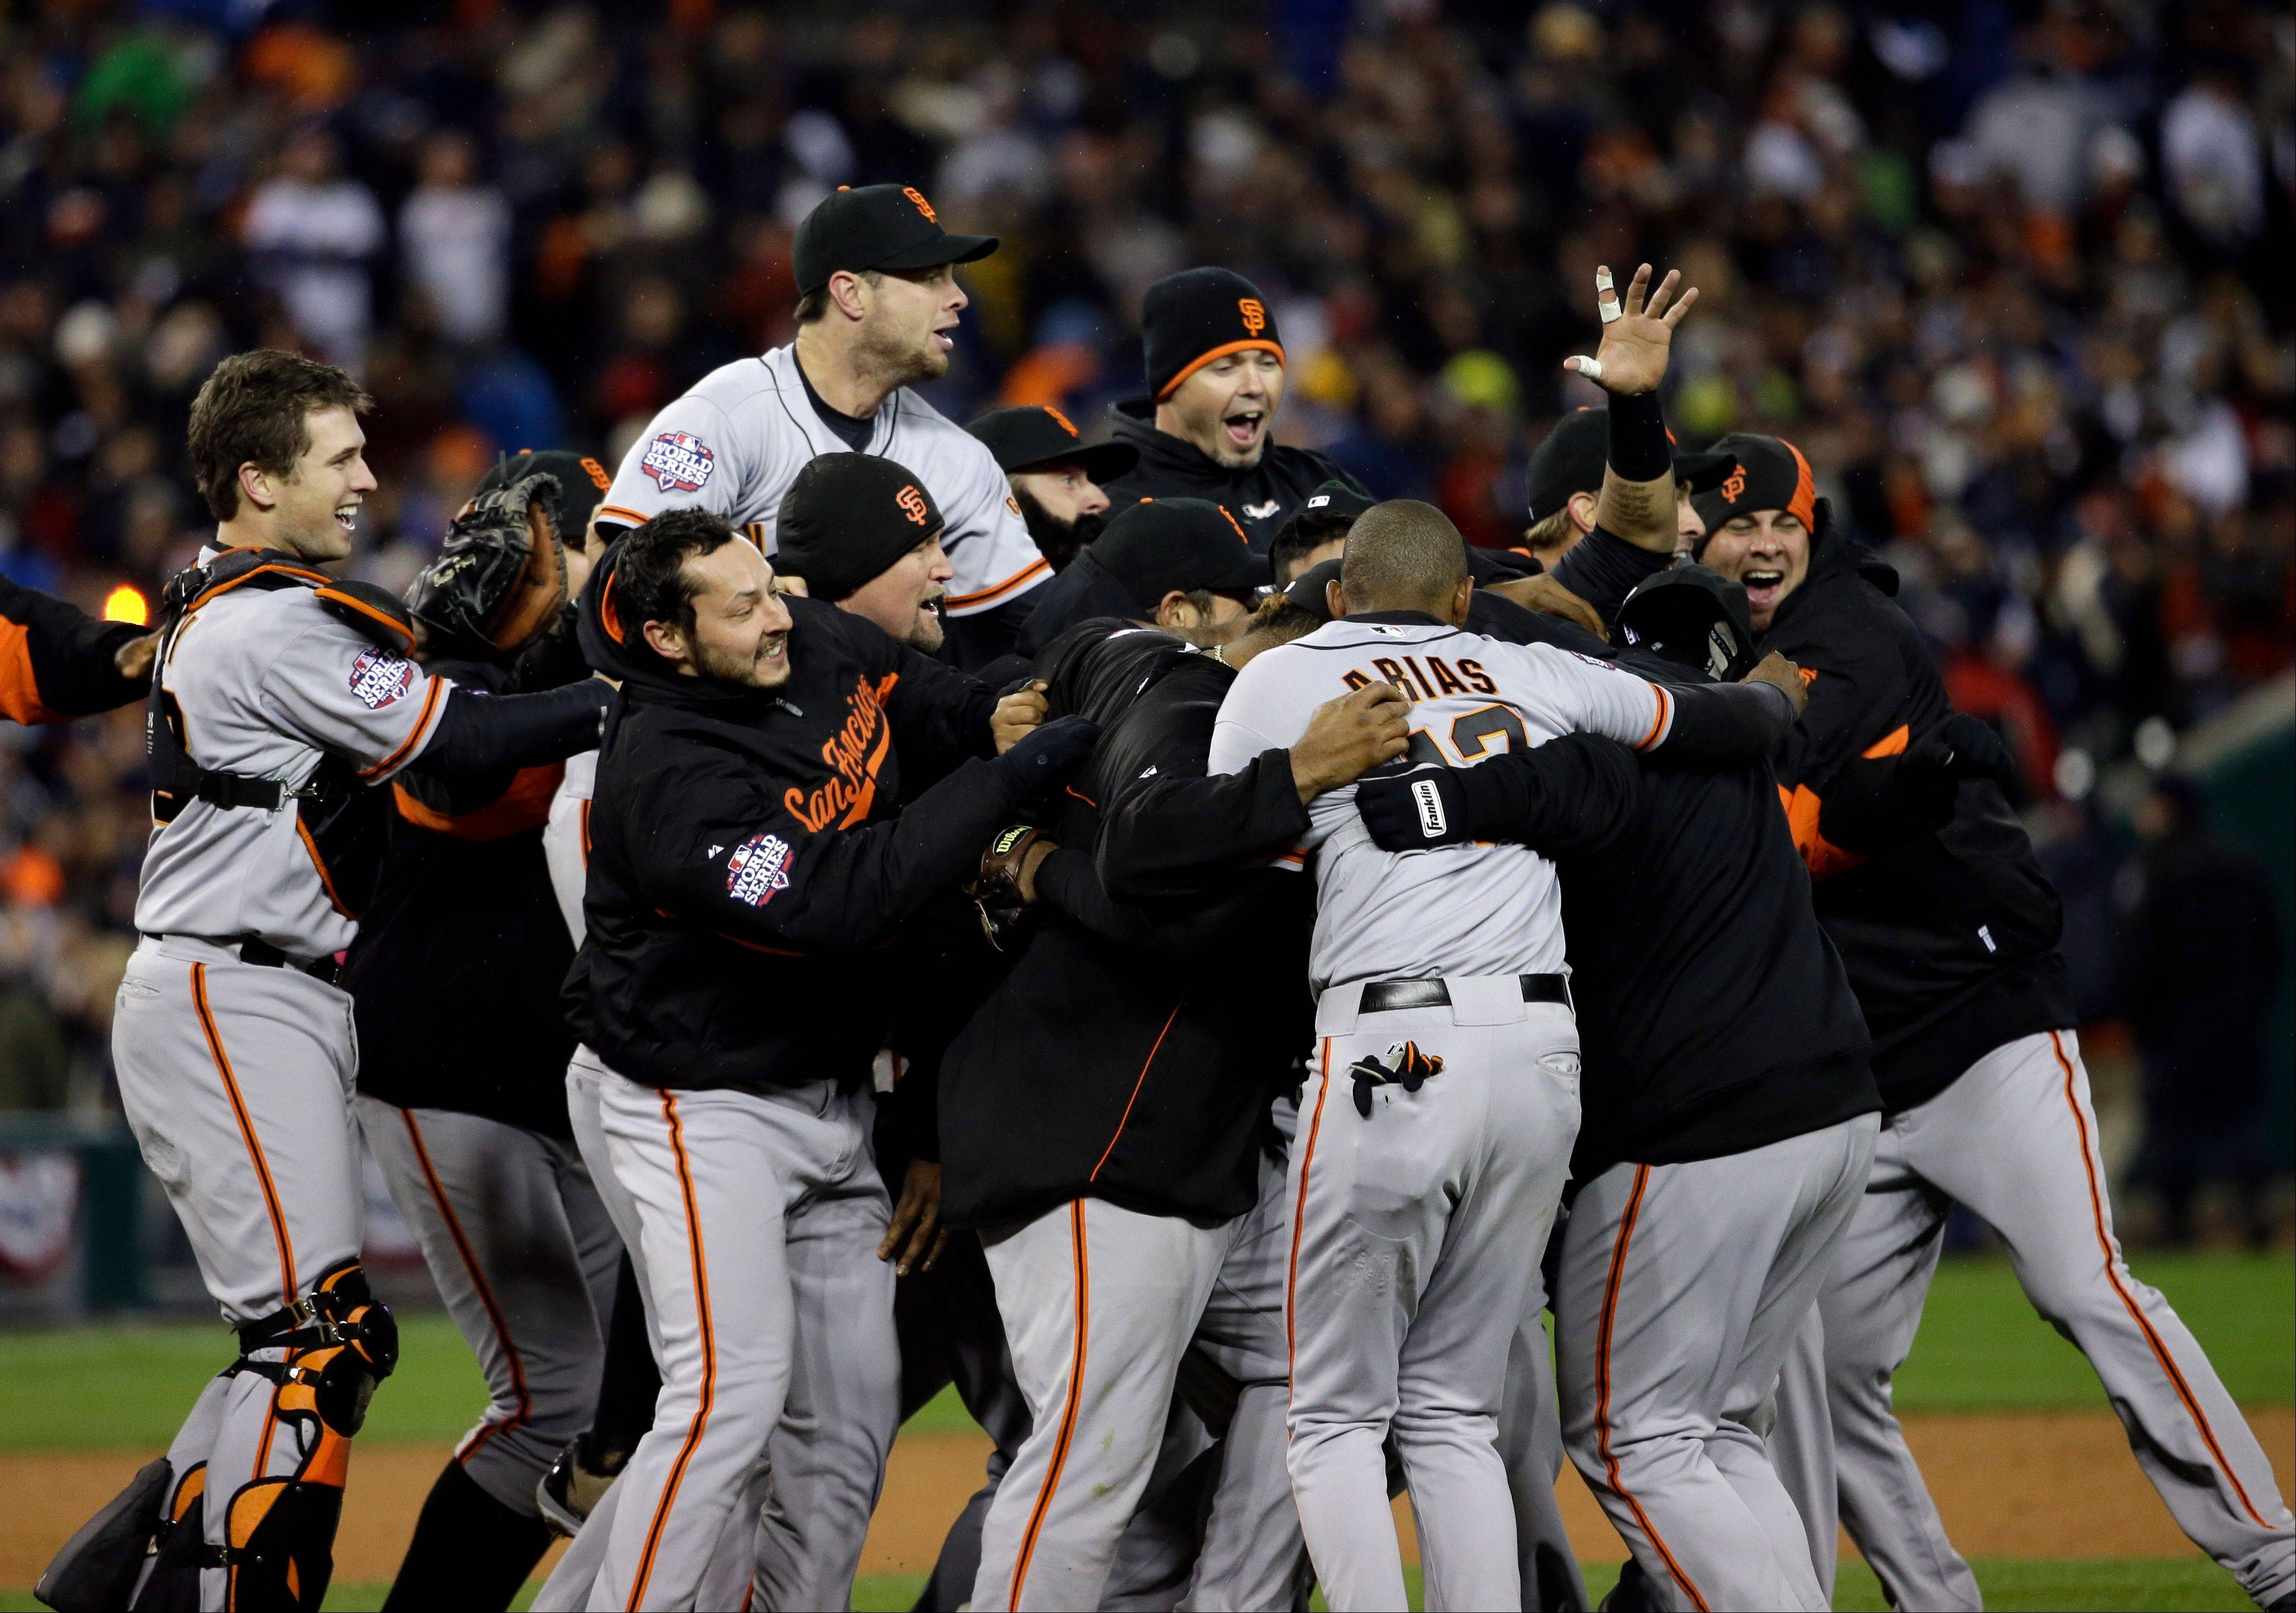 The San Francisco Giants celebrate after winning Game 4 of baseball's World Series against the Detroit Tigers Sunday, Oct. 28, 2012, in Detroit. The Giants won 4-3 to win the series.